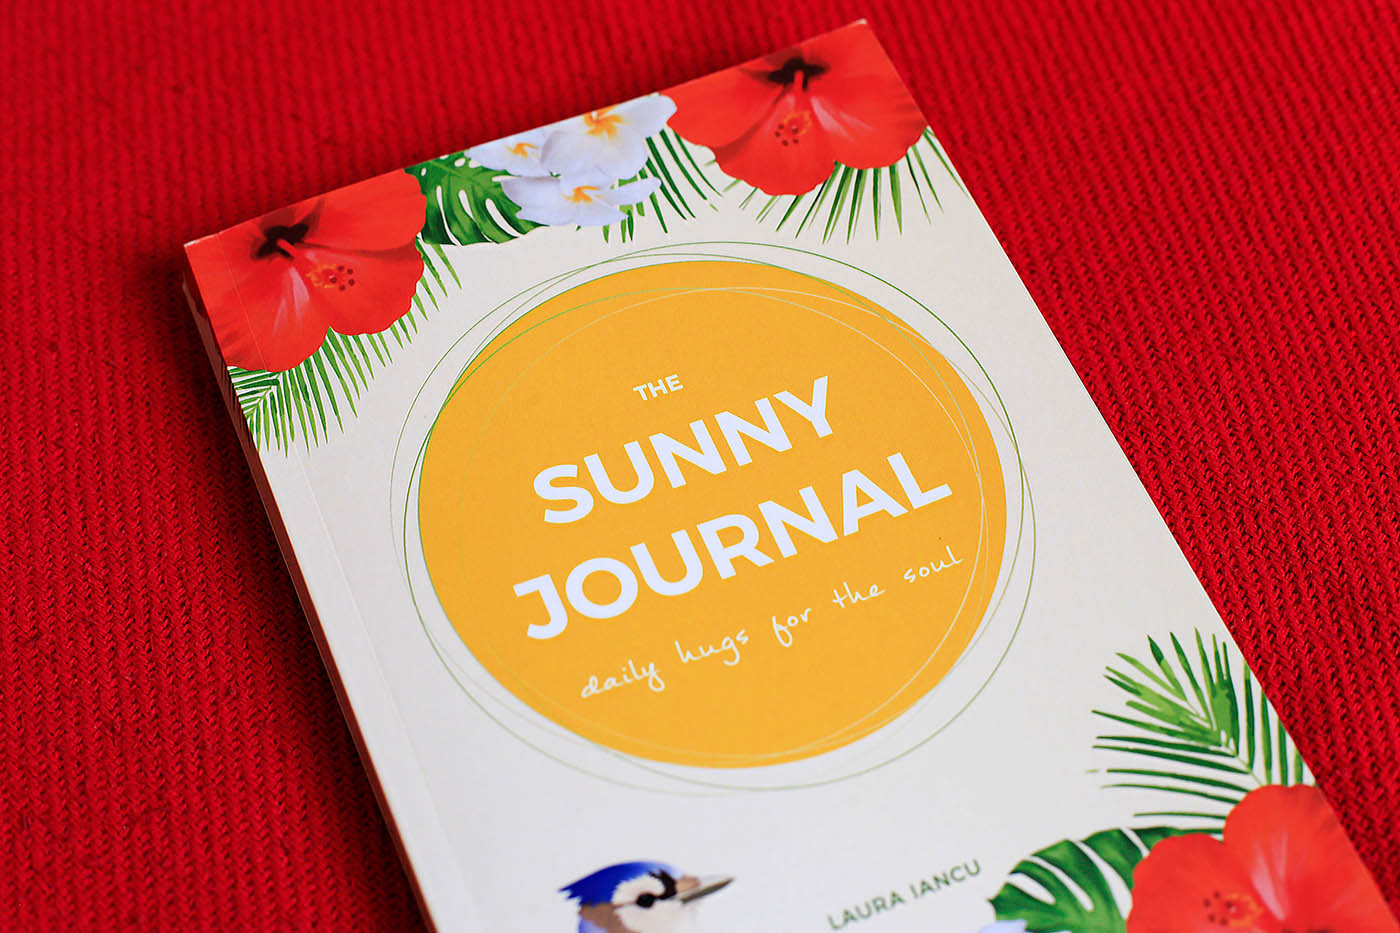 Keeping a daily journal can be incredibly beneficial and can help you move your life forward more easily. No wonder so many successful people journal every day! If you're a dream-chasers, goal diggers or go-getters, The Sunny Journal is for you! Grab your copy in Amazon!